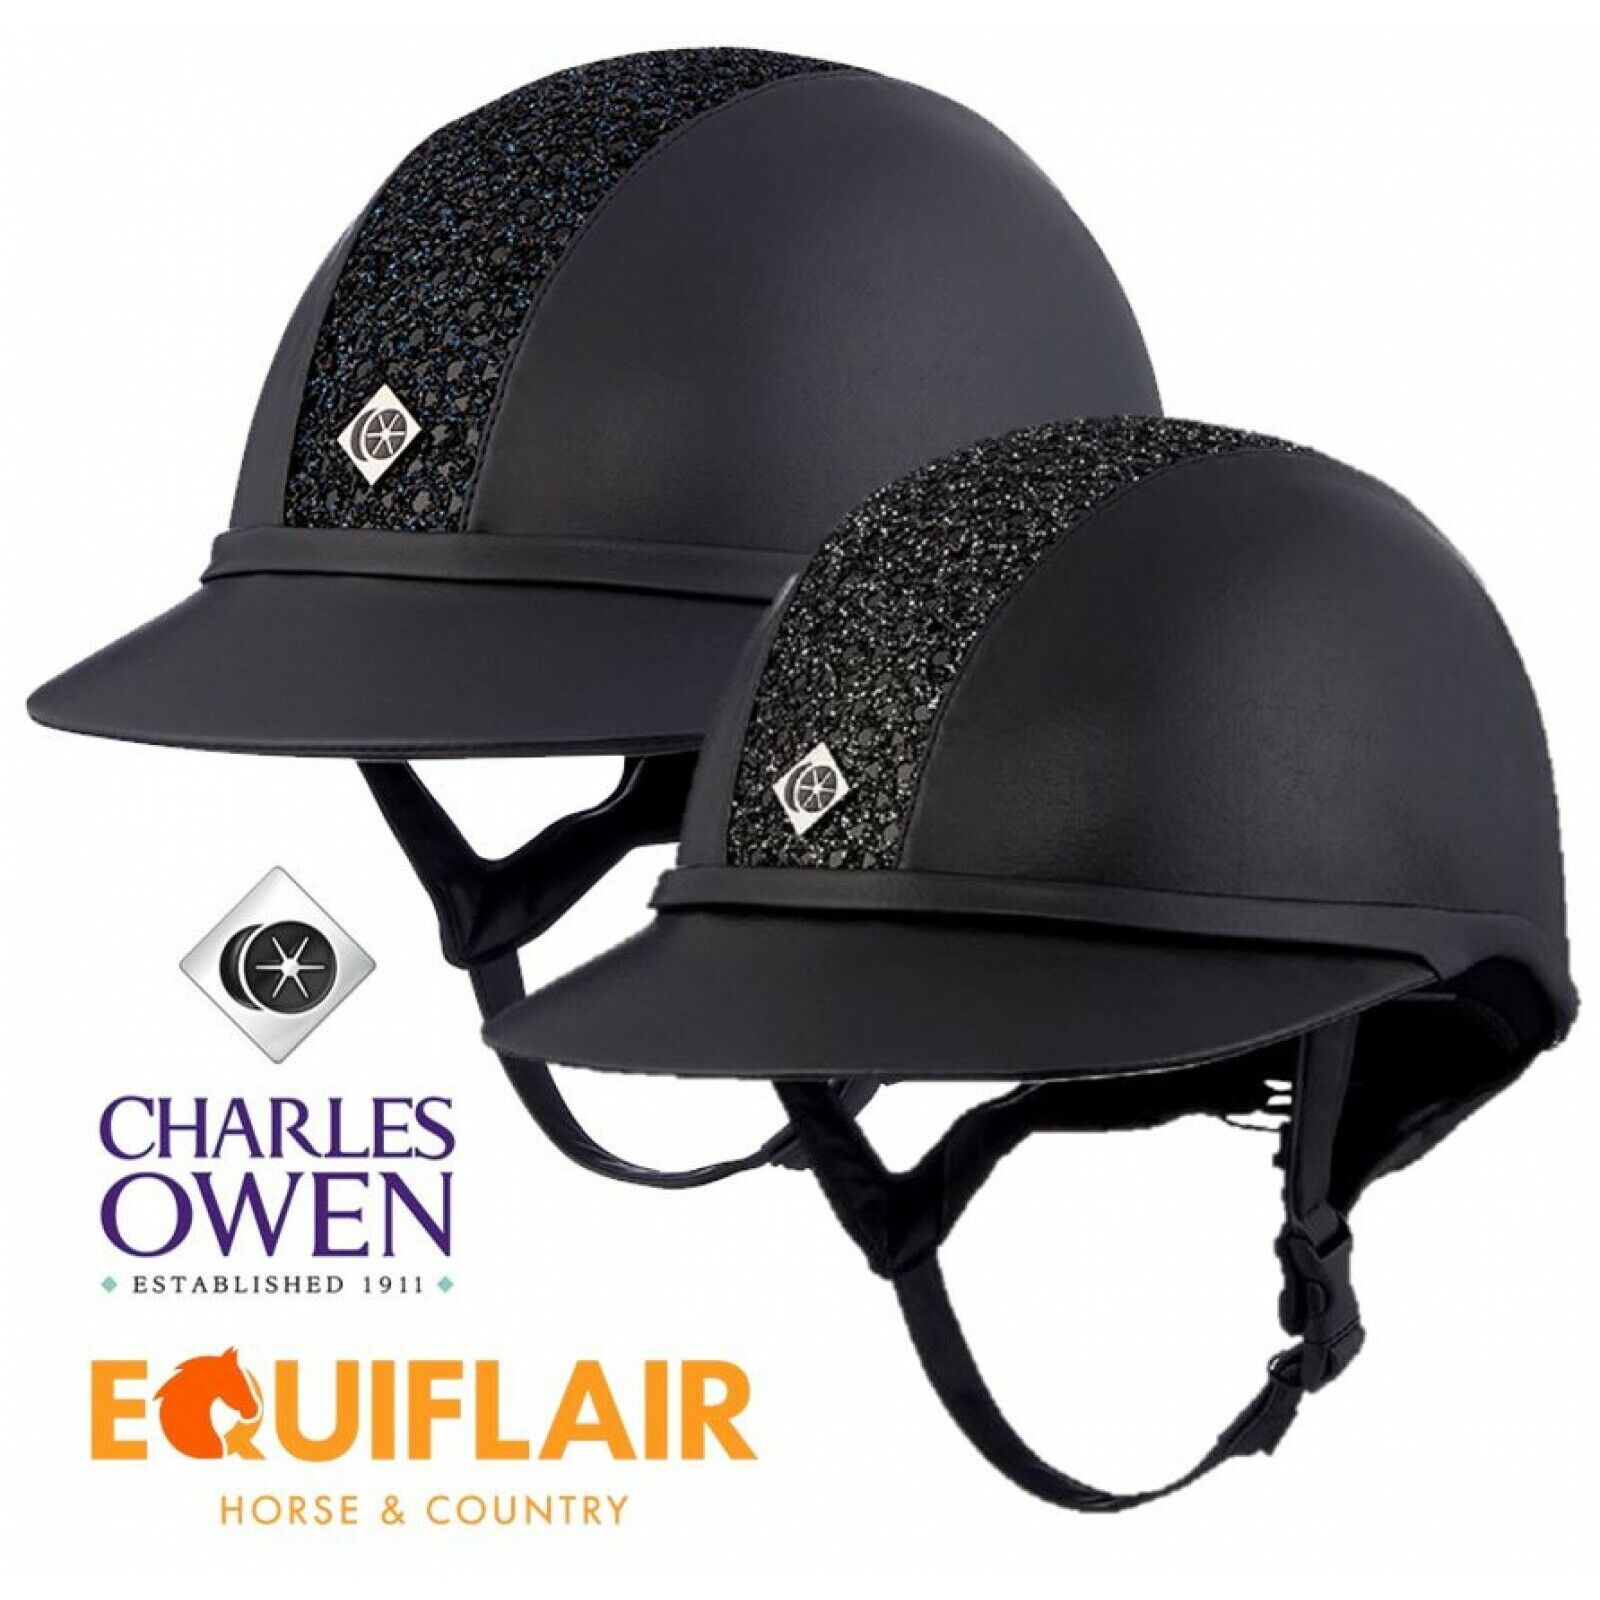 Charles Owen SP8 Sparkly Leather Look Sun  Predection Riding Helmet ASTM F1163 15  latest styles